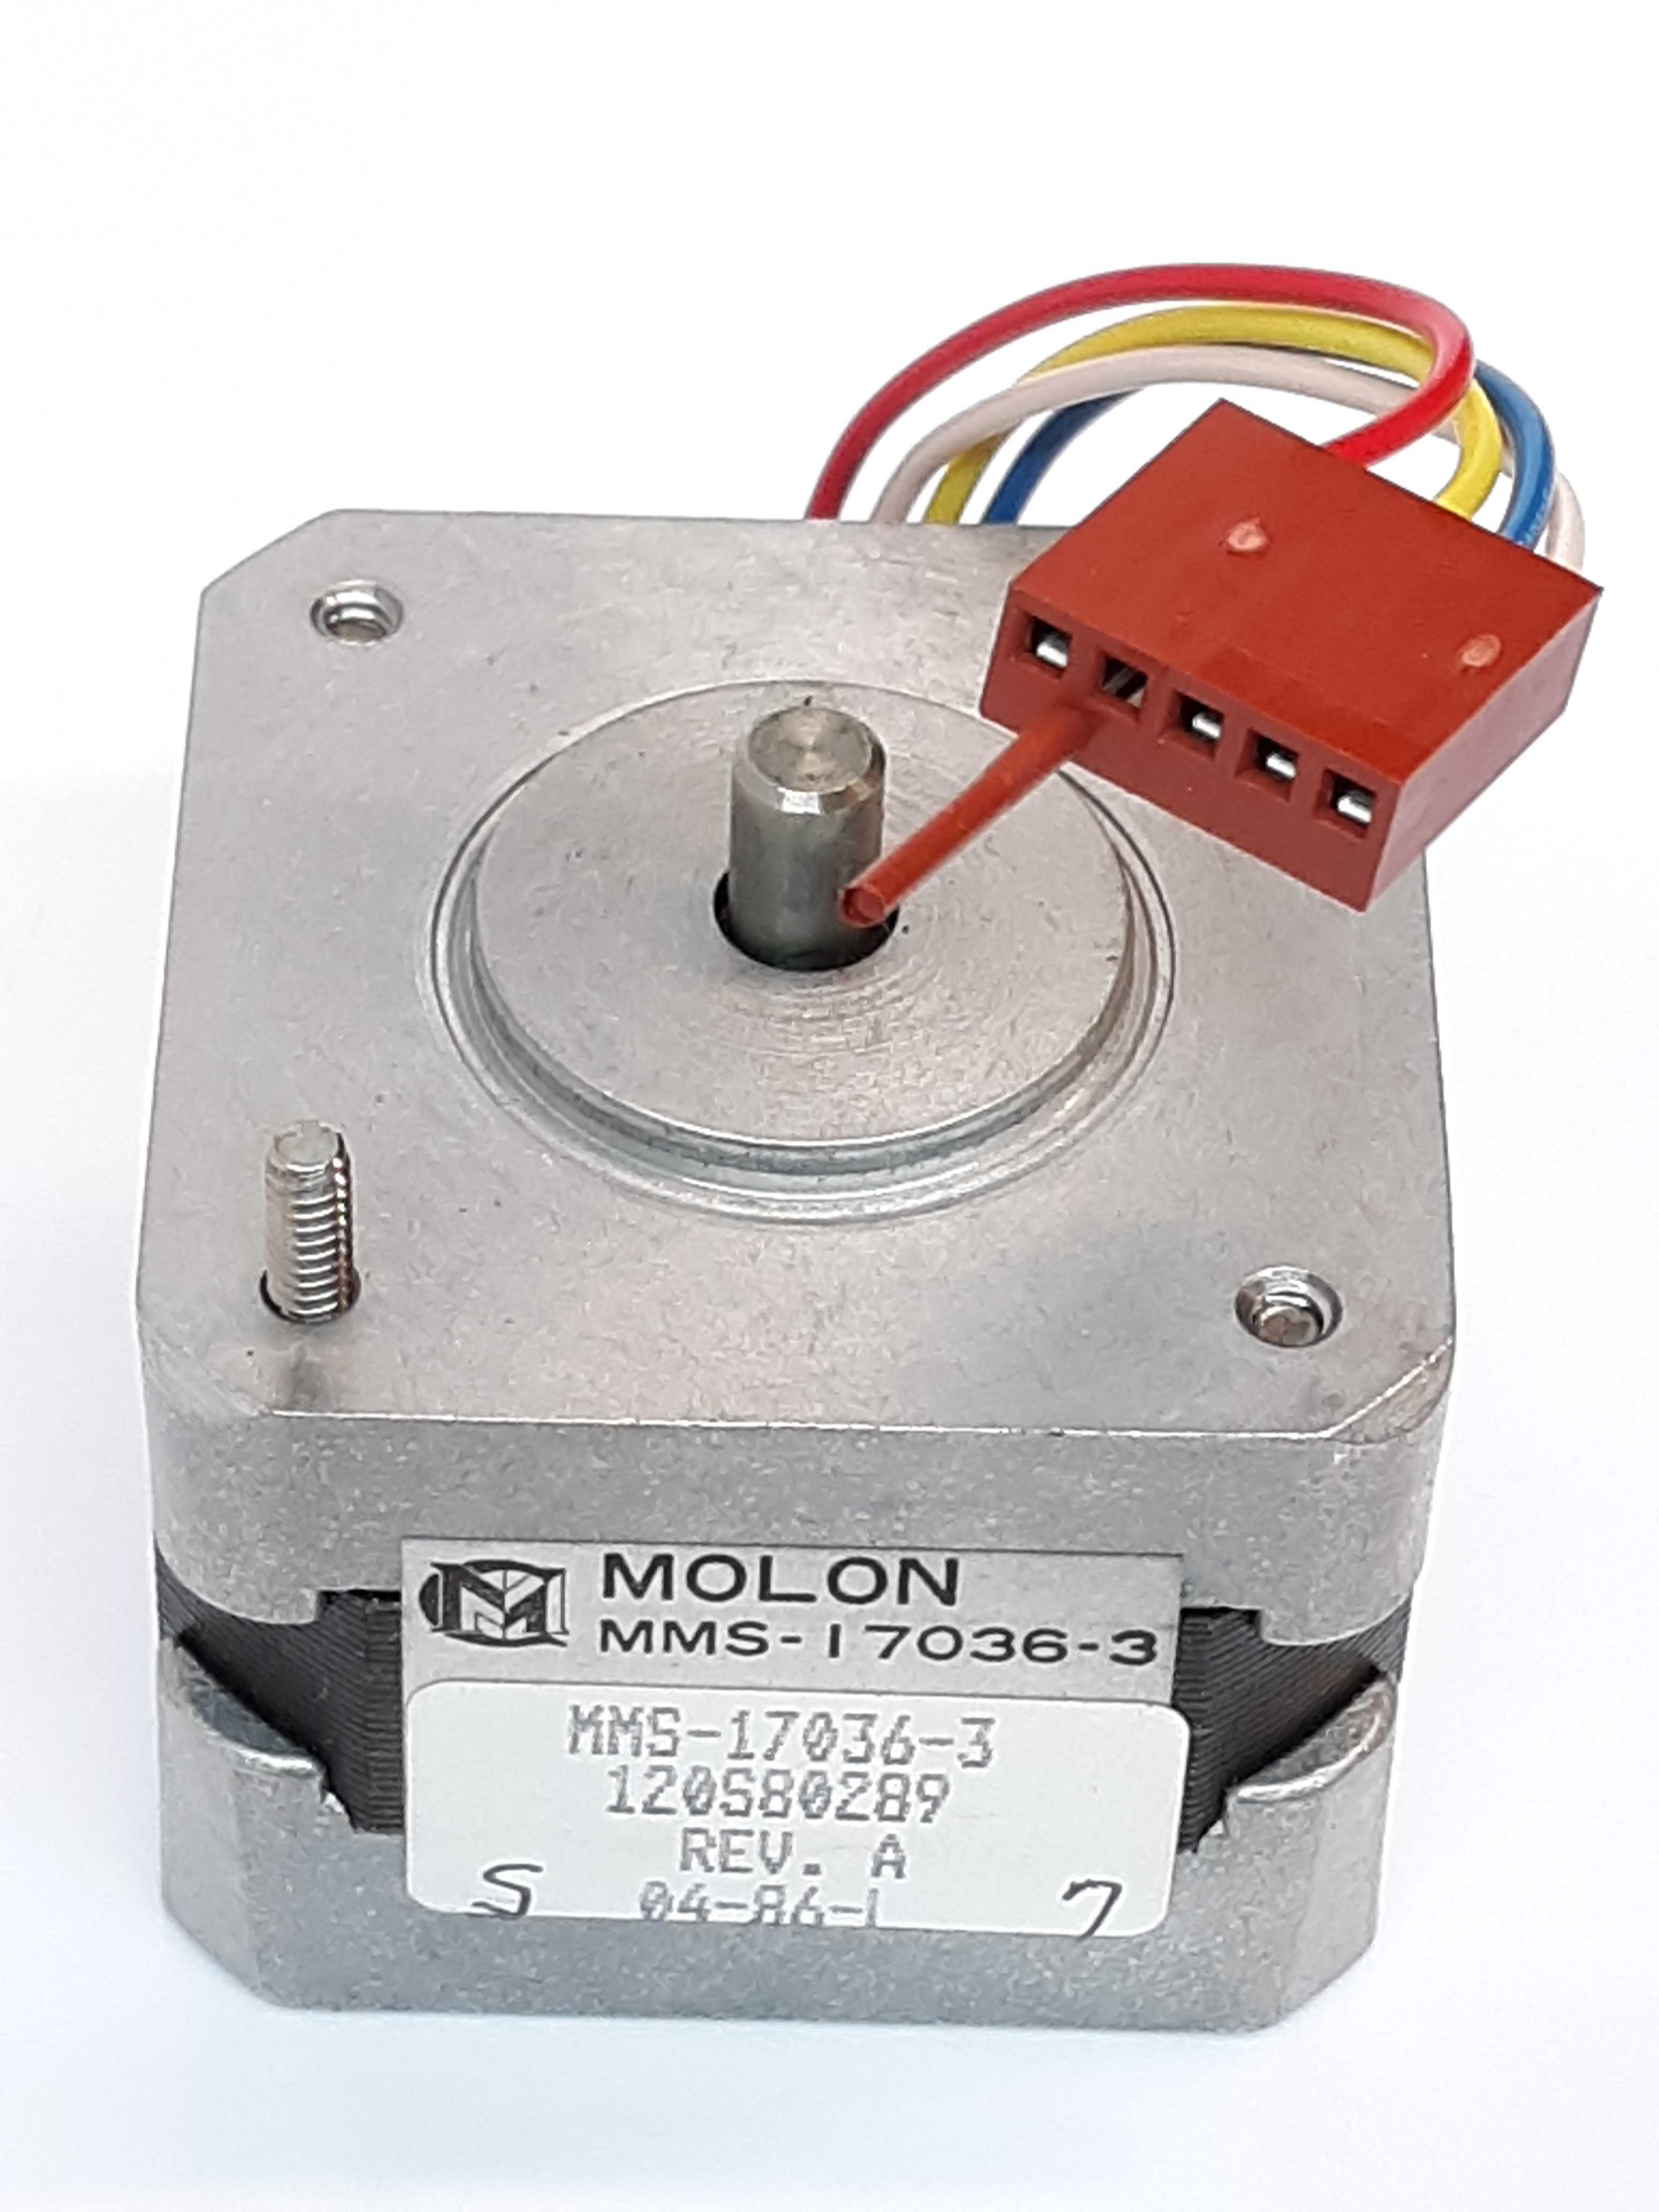 Molon MMS-17036-3 Stepper Motor 4-wire Bipolar High torque-to-inertia ratios